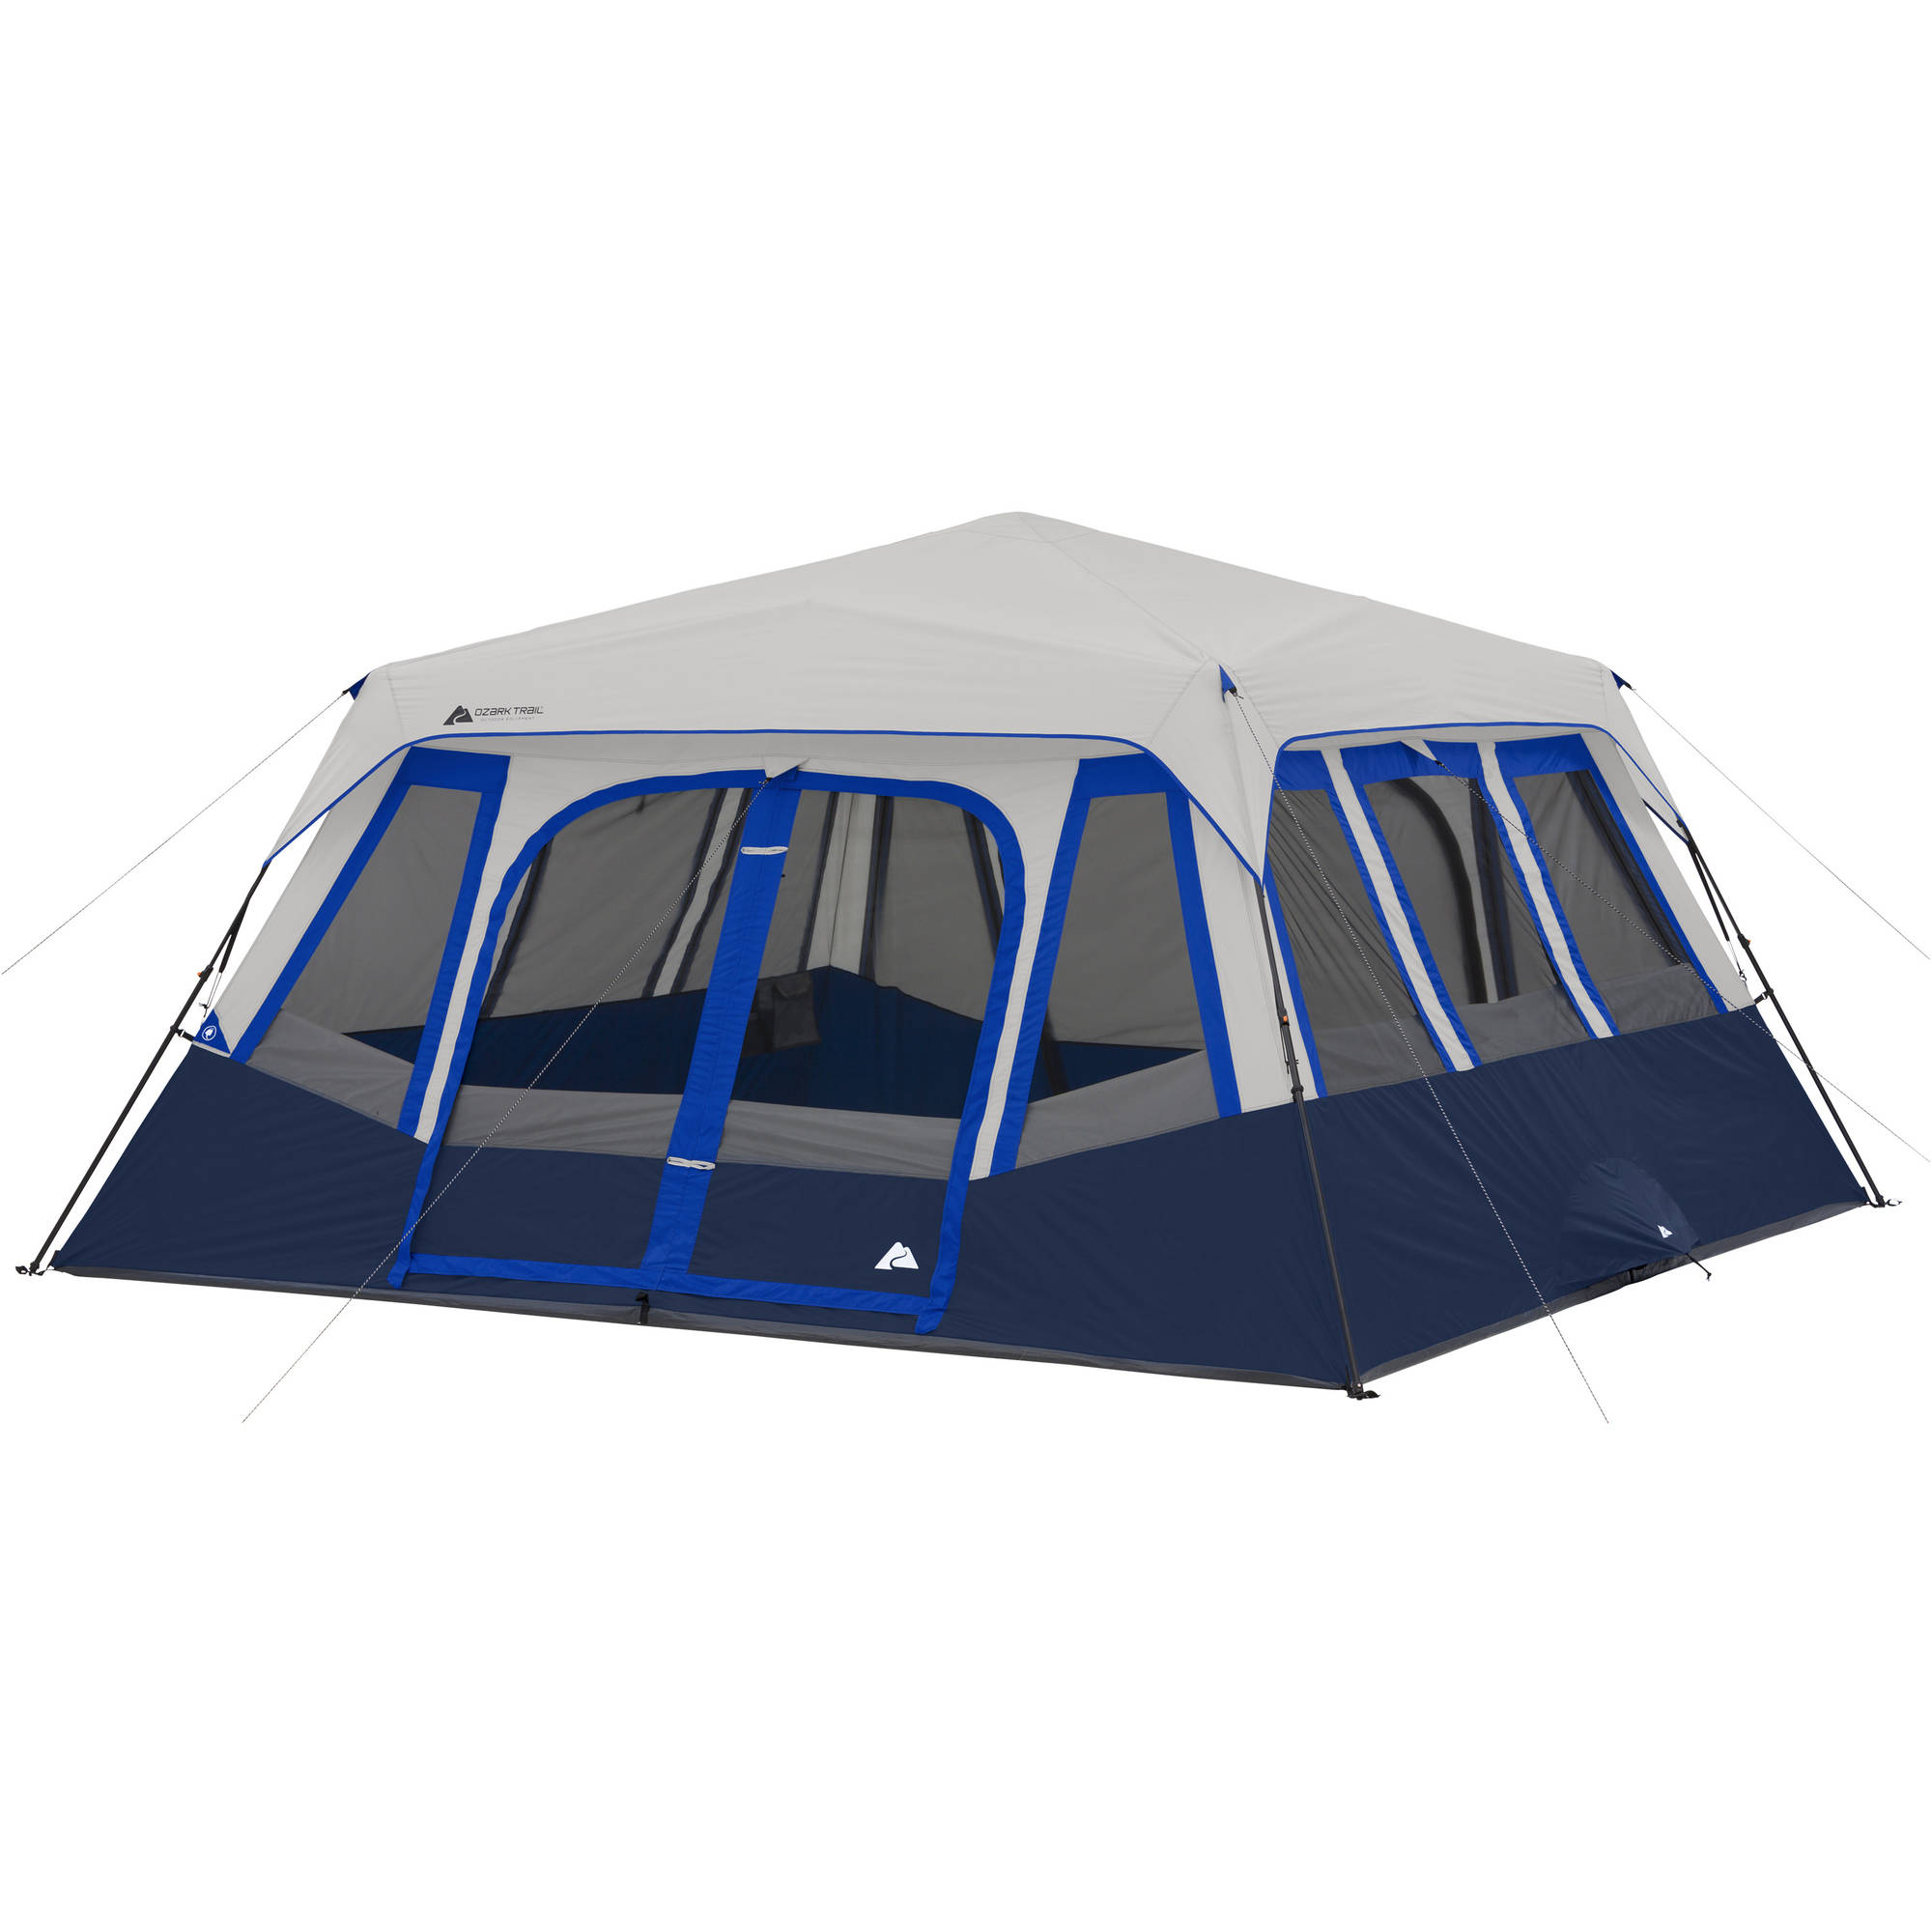 Ozark Trail 14-Person 2 Room Instant Cabin Tent  sc 1 st  Walmart.com & Ozark Trail 14-Person 2 Room Instant Cabin Tent - Walmart.com